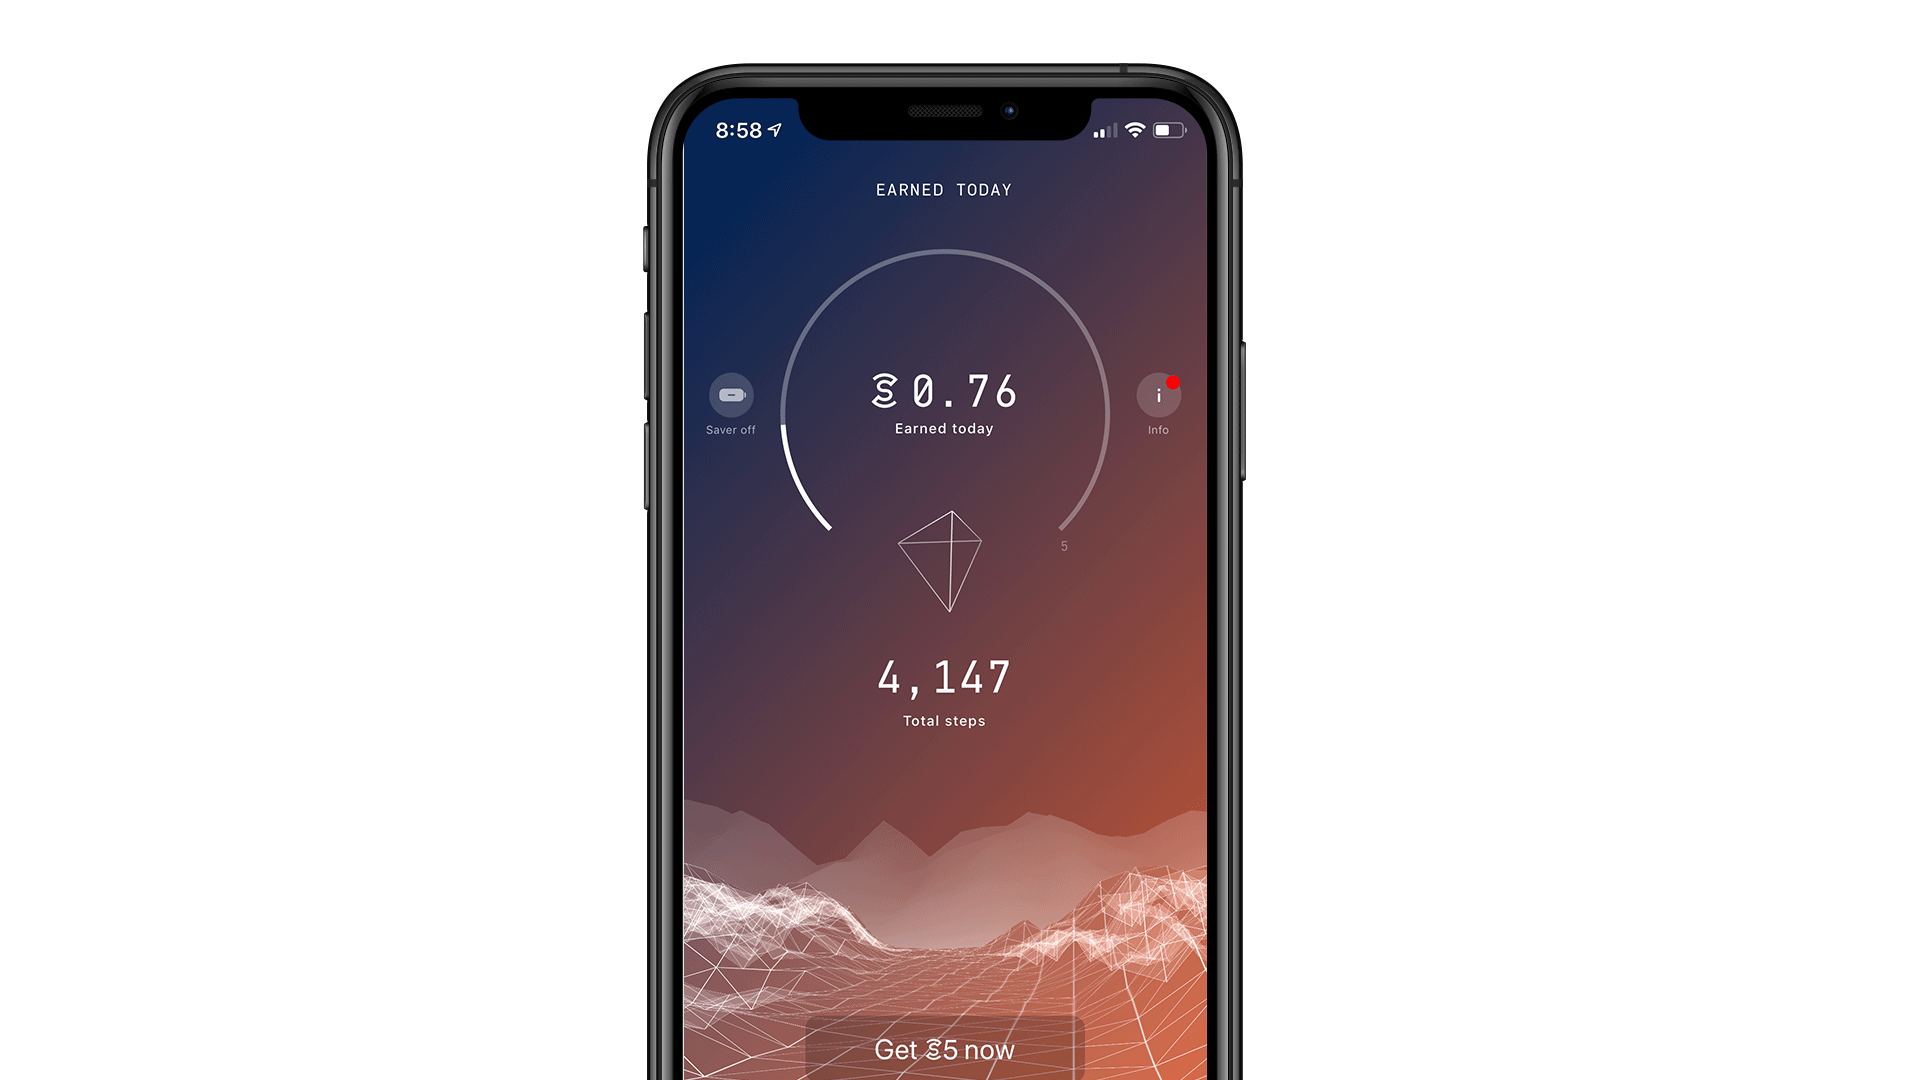 Sweatcoin App displayed on iPhone XS